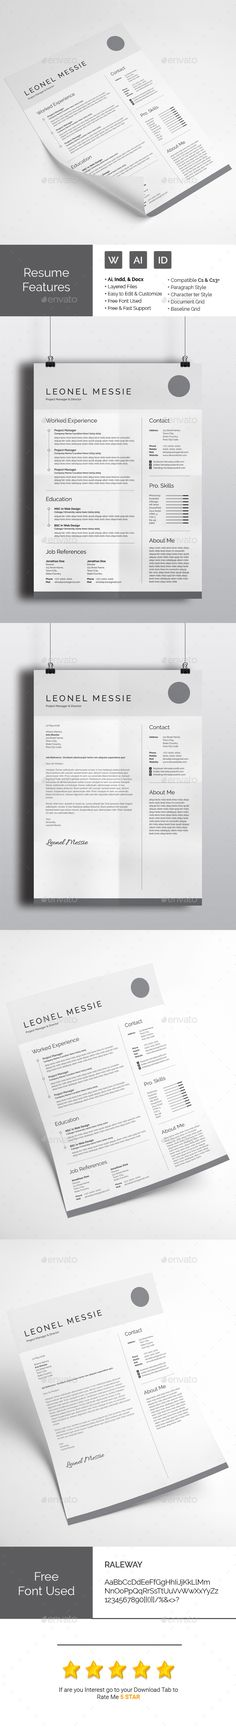 Resume\/CV Resume cv, Cv template and Simple resume template - resume cv definition